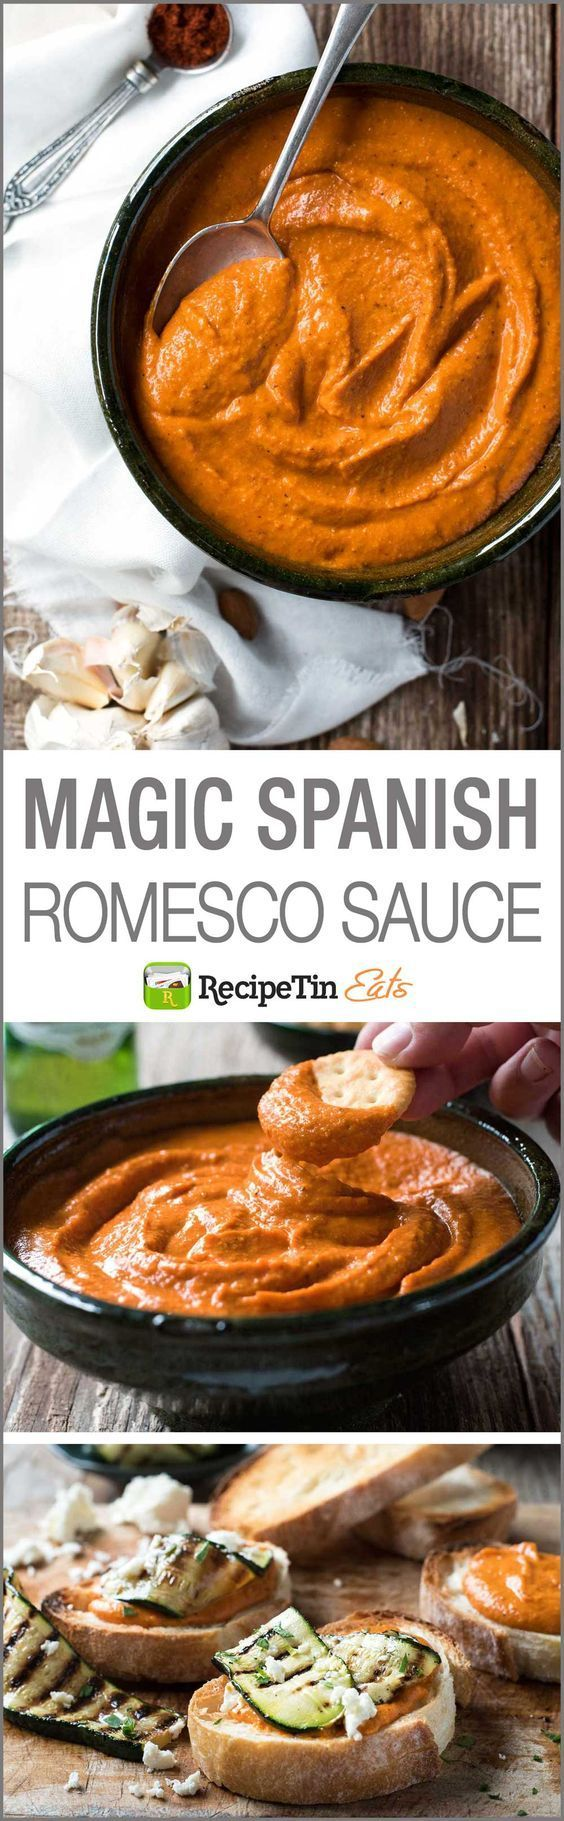 Magic Spanish Romesco Sauce – This miracle sauce is simple to make and fabulous to use as a dip sauce spread pesto as a marinade or even to flavour and thicken soups!